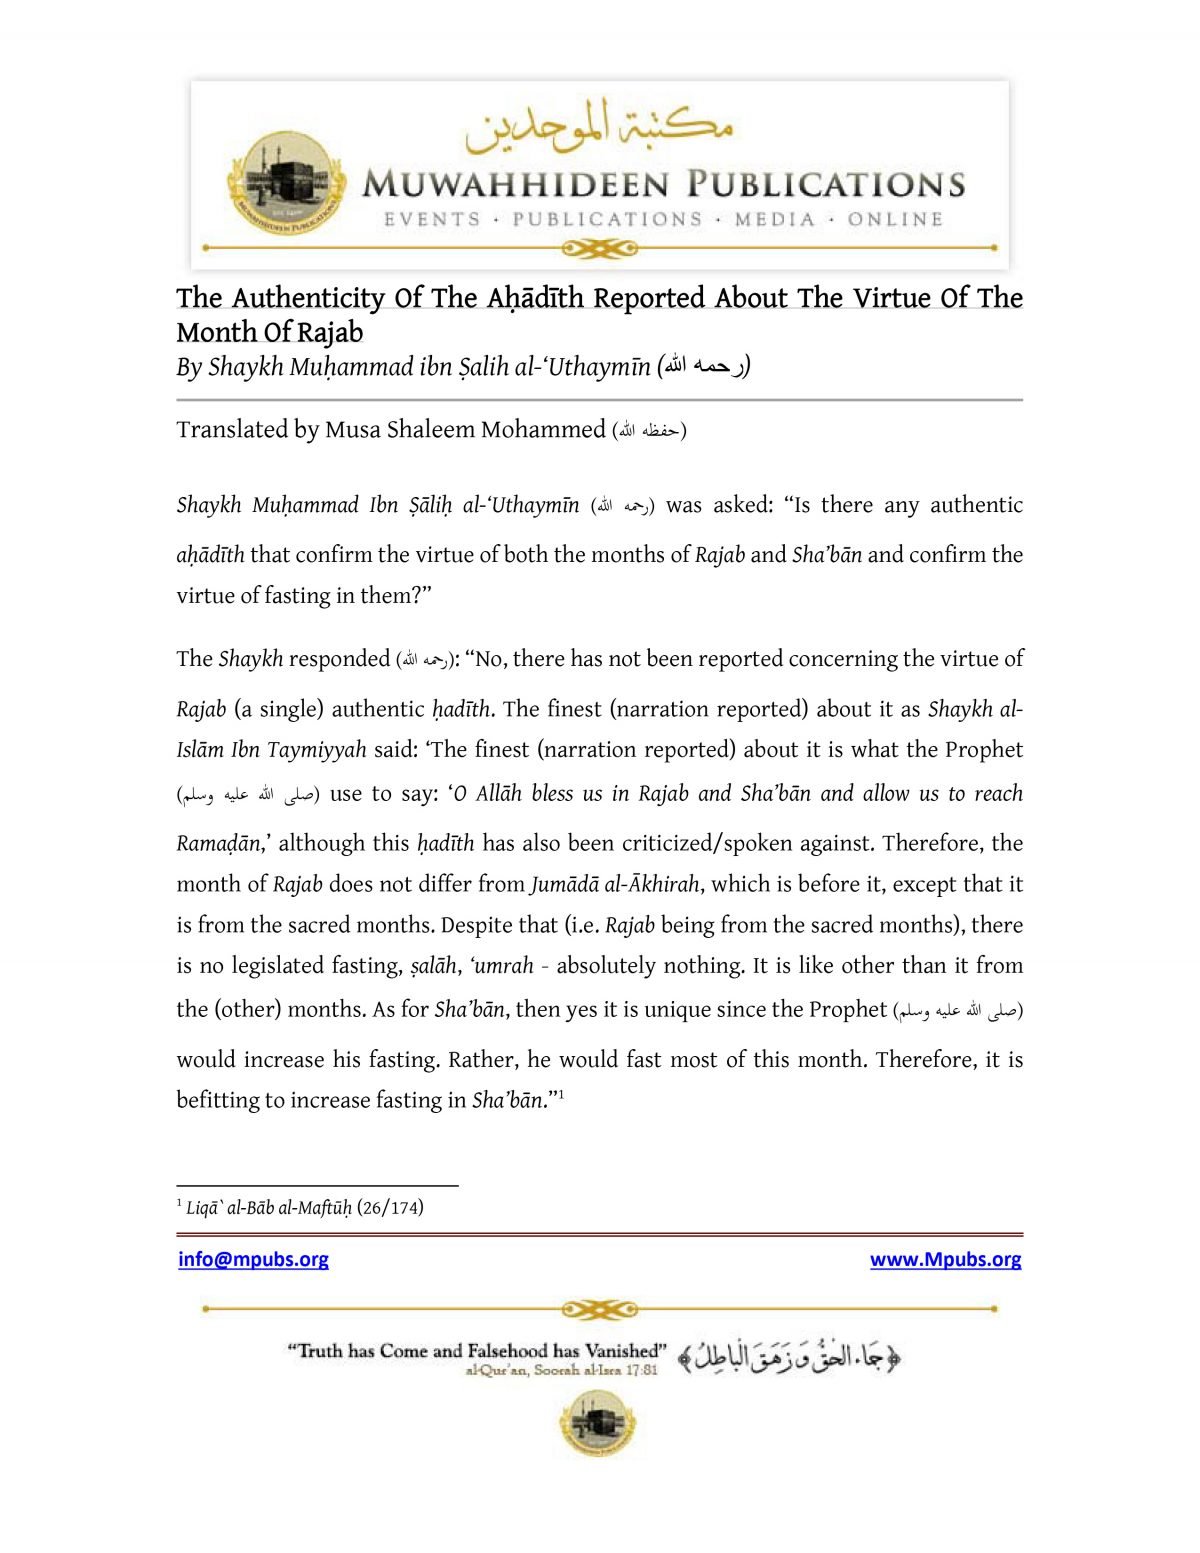 MUUT 20160417 authenticity of ahadith reported about the virtue of rajab